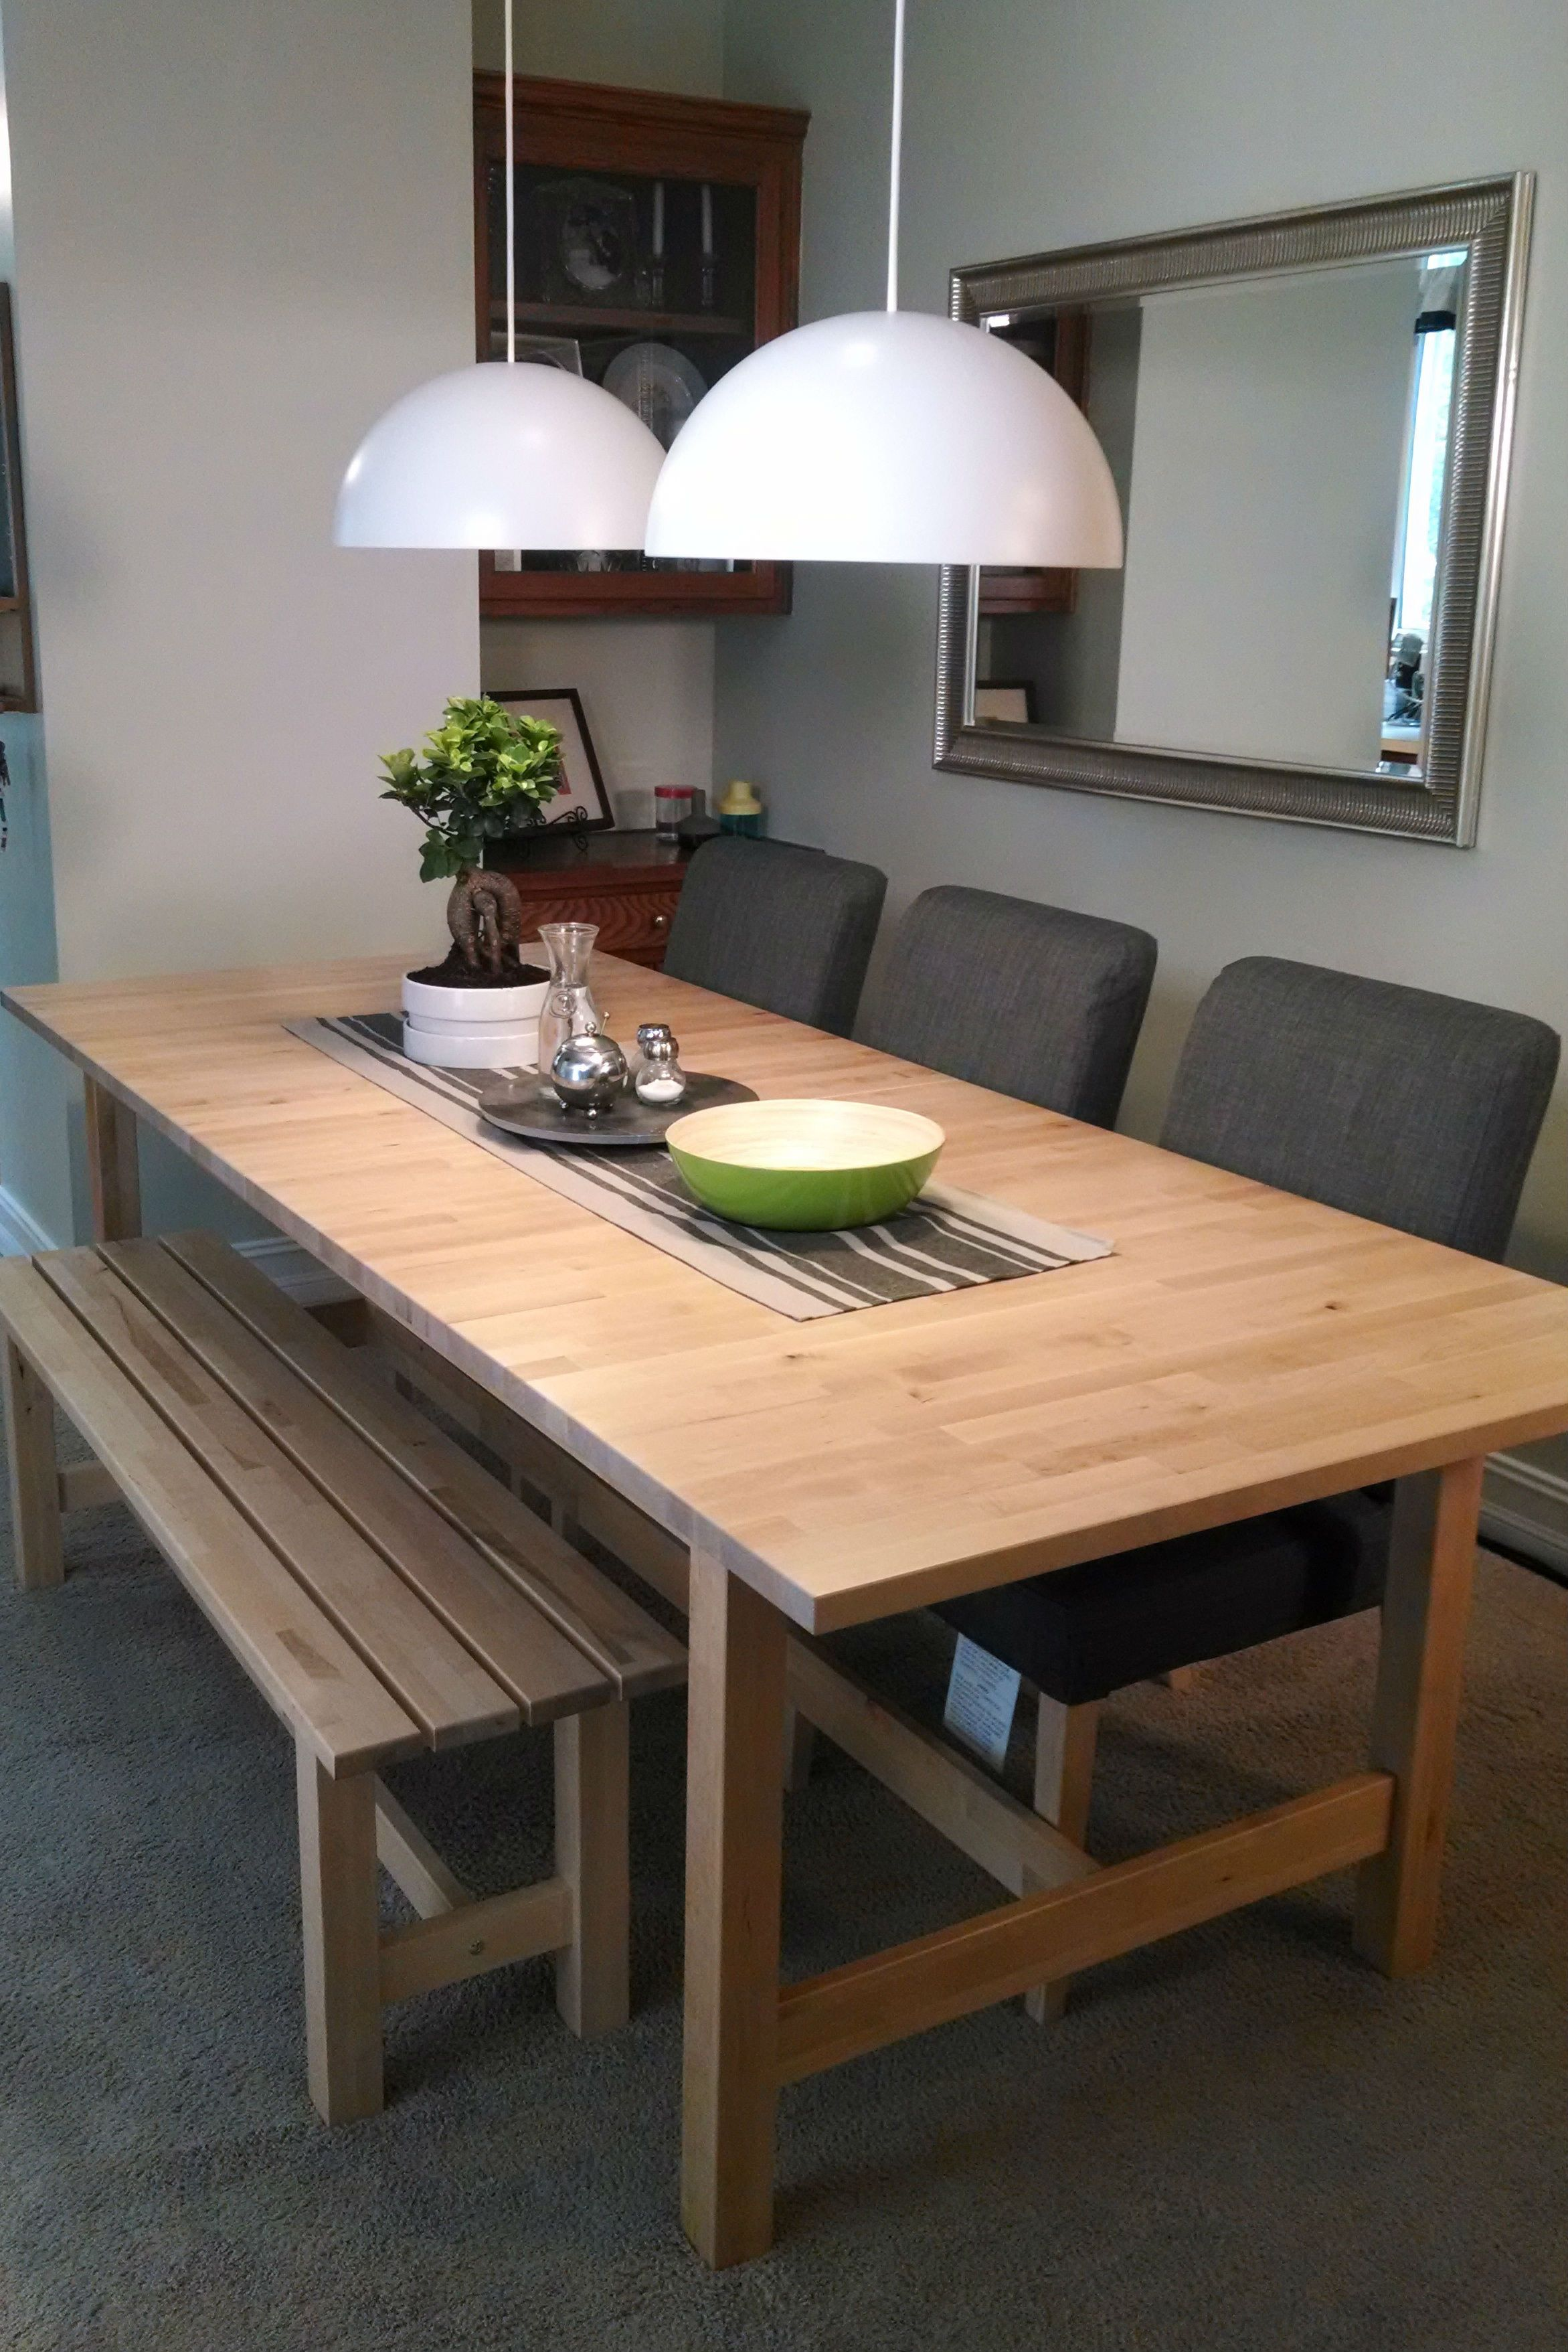 The solid birch construction of the NORDEN dining table is a